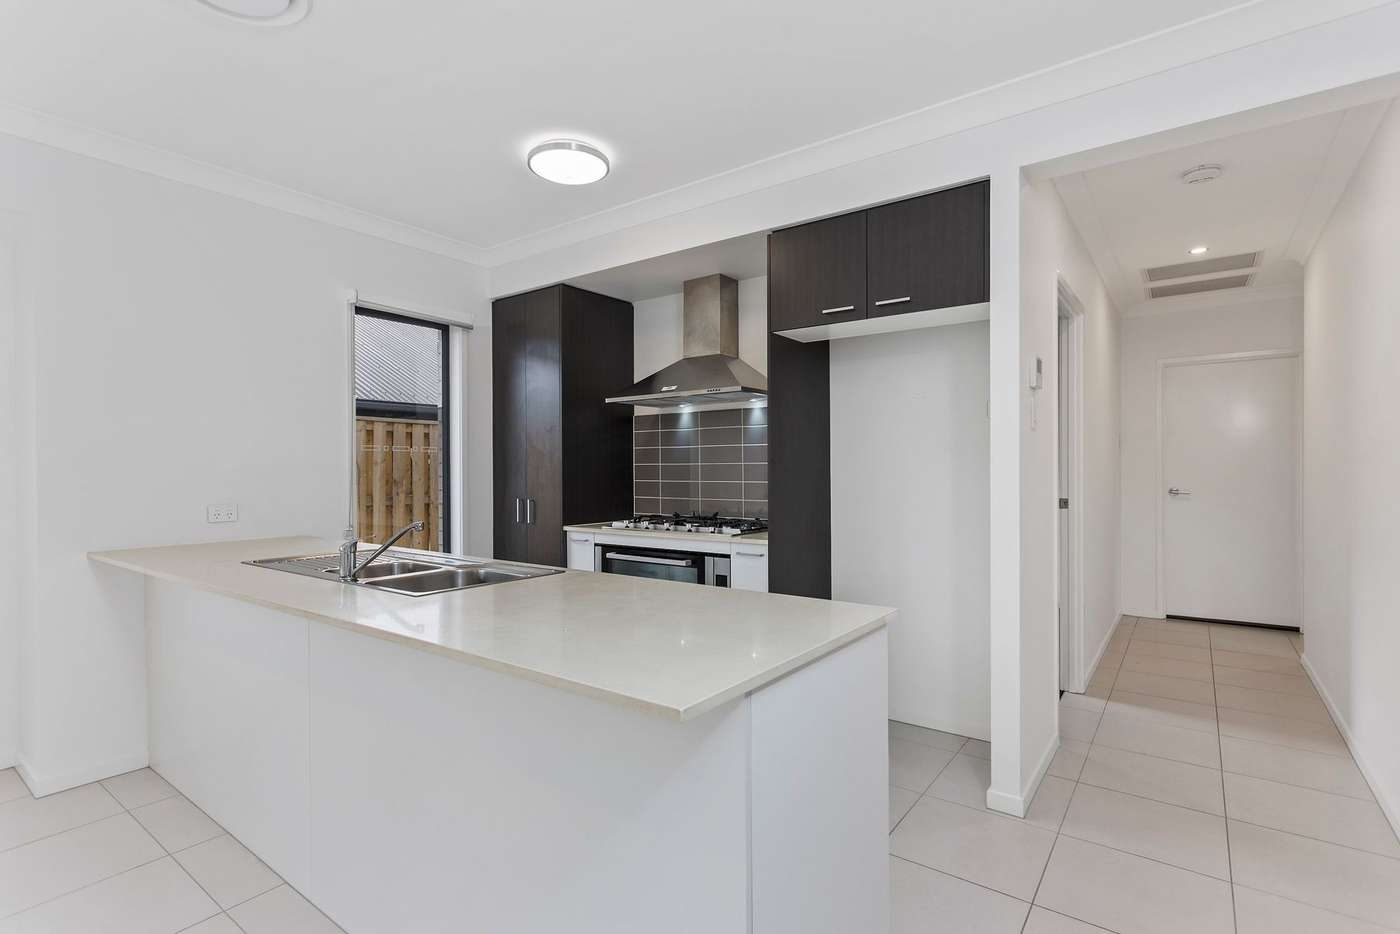 Fifth view of Homely house listing, 4 Fleming Street, Logan Reserve QLD 4133